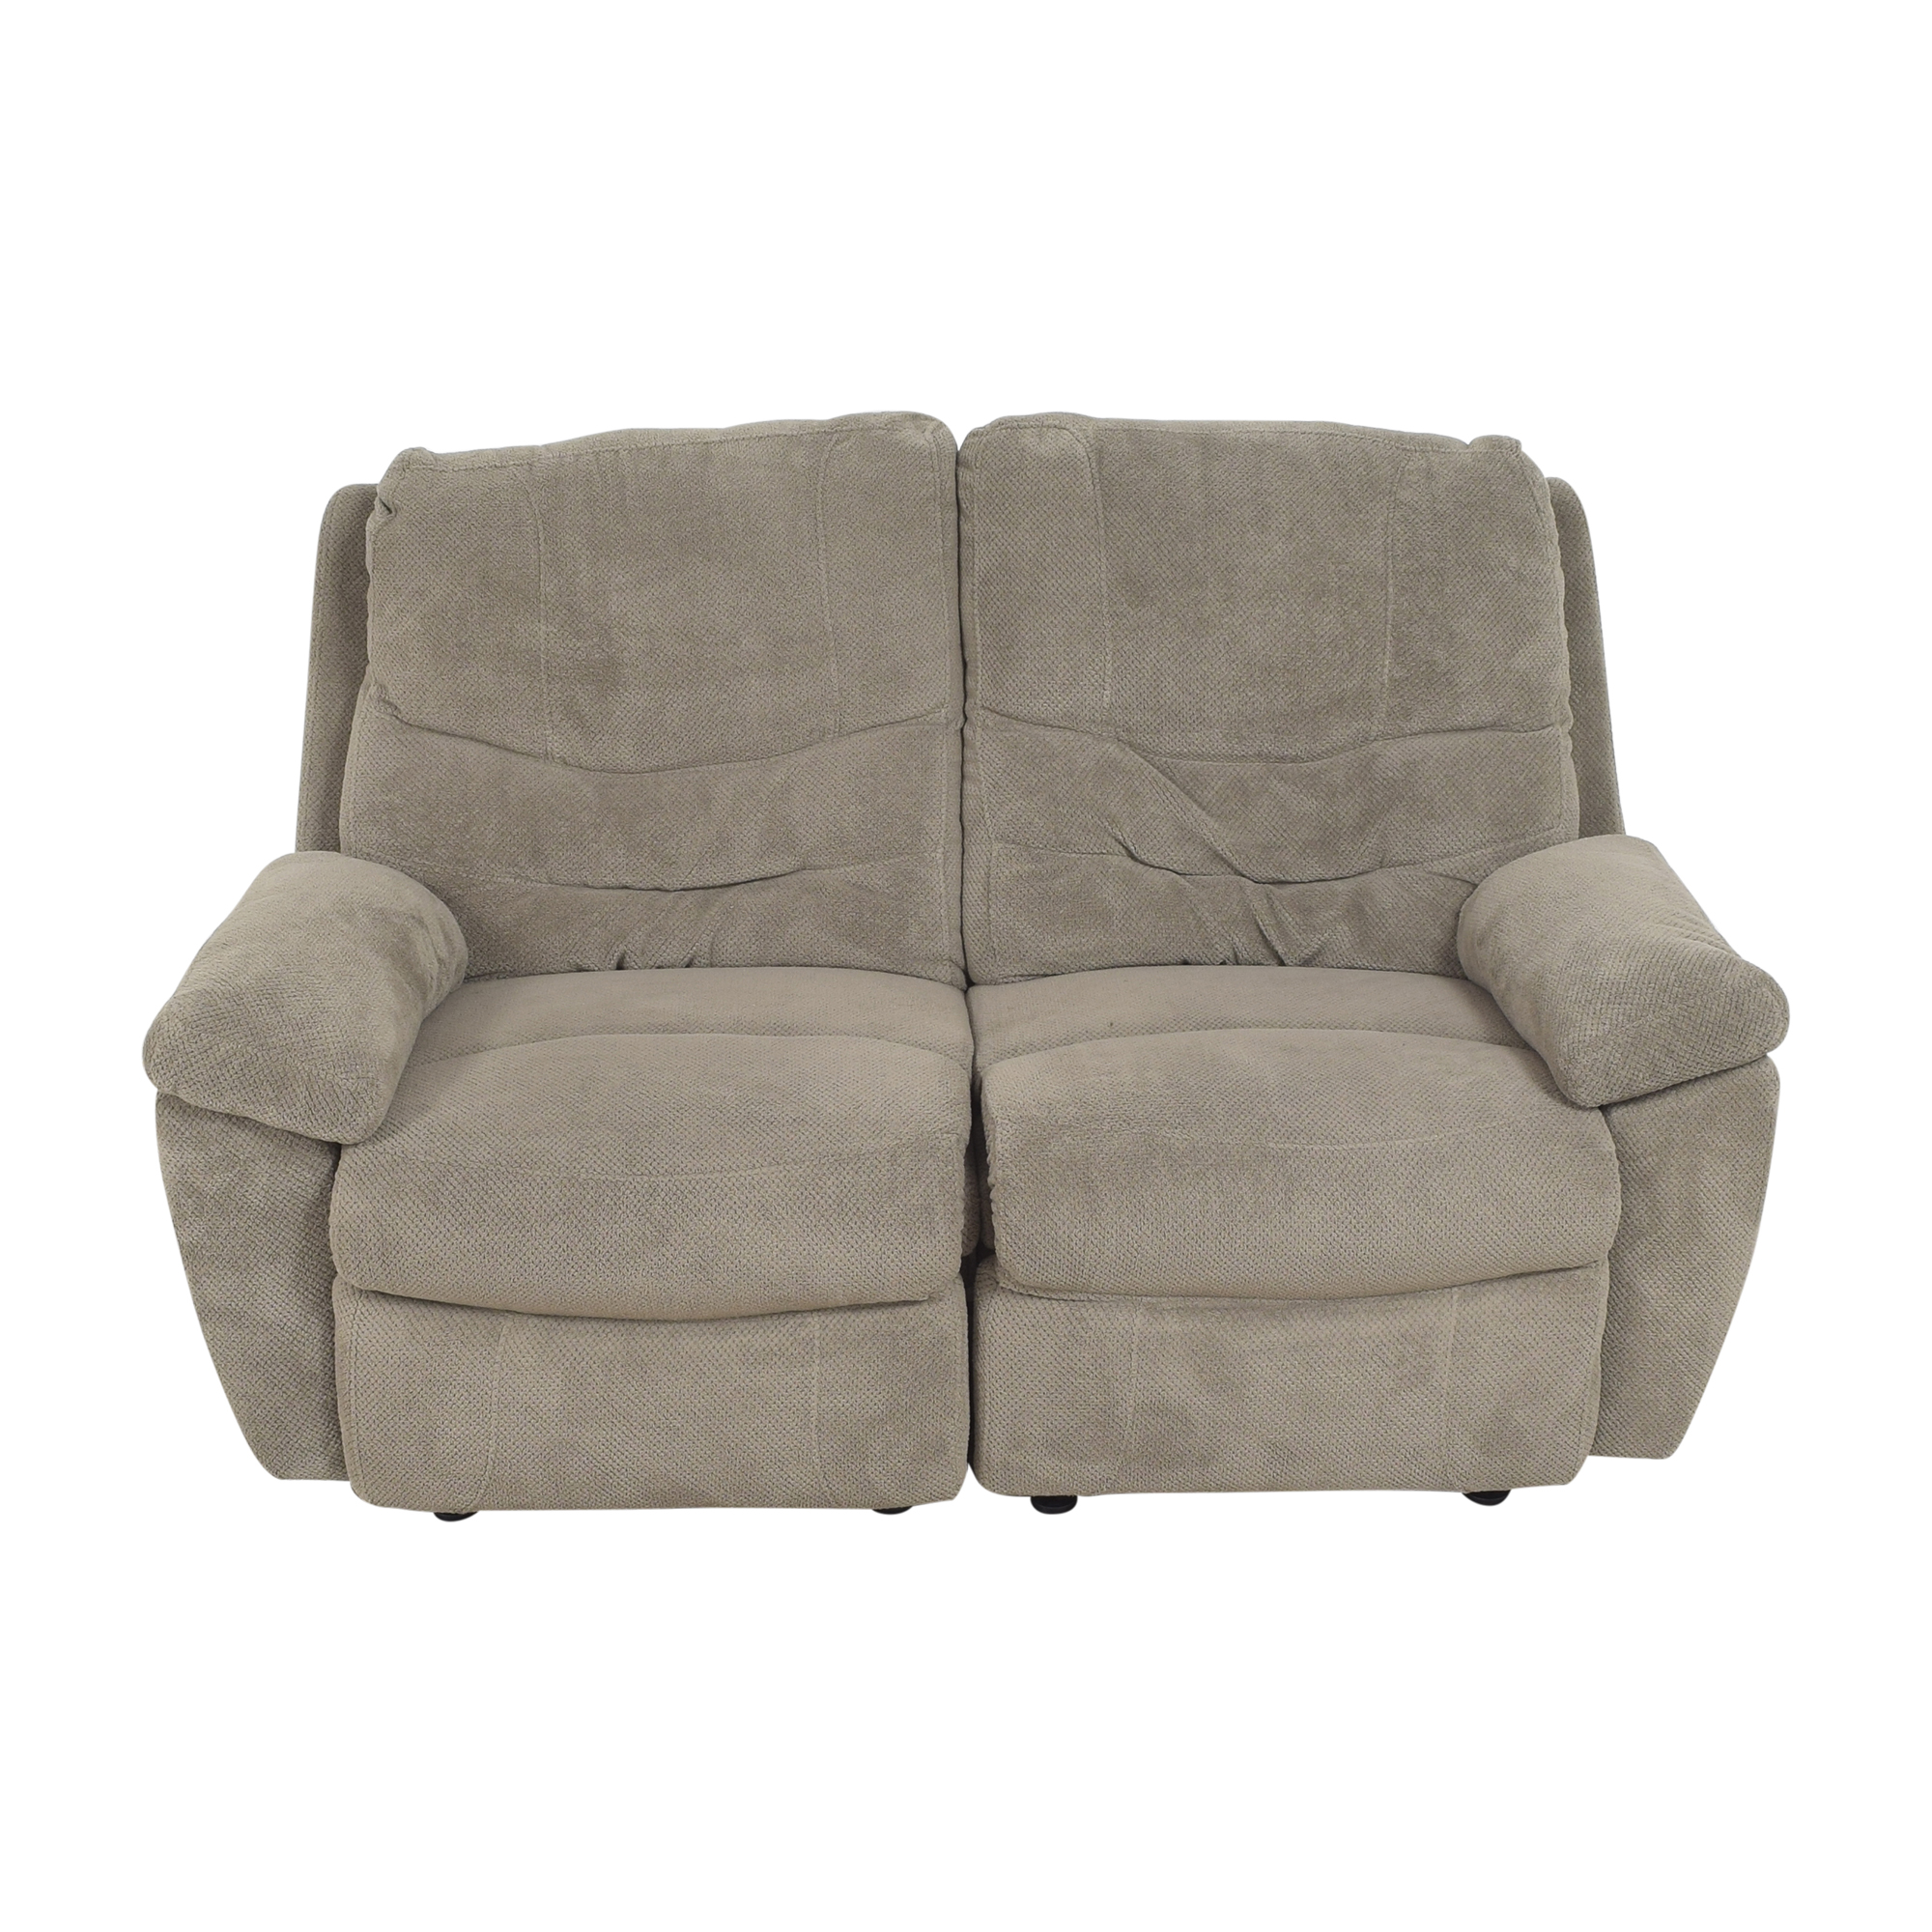 Raymour & Flanigan Raymour & Flanigan Recliner Loveseat Recliners